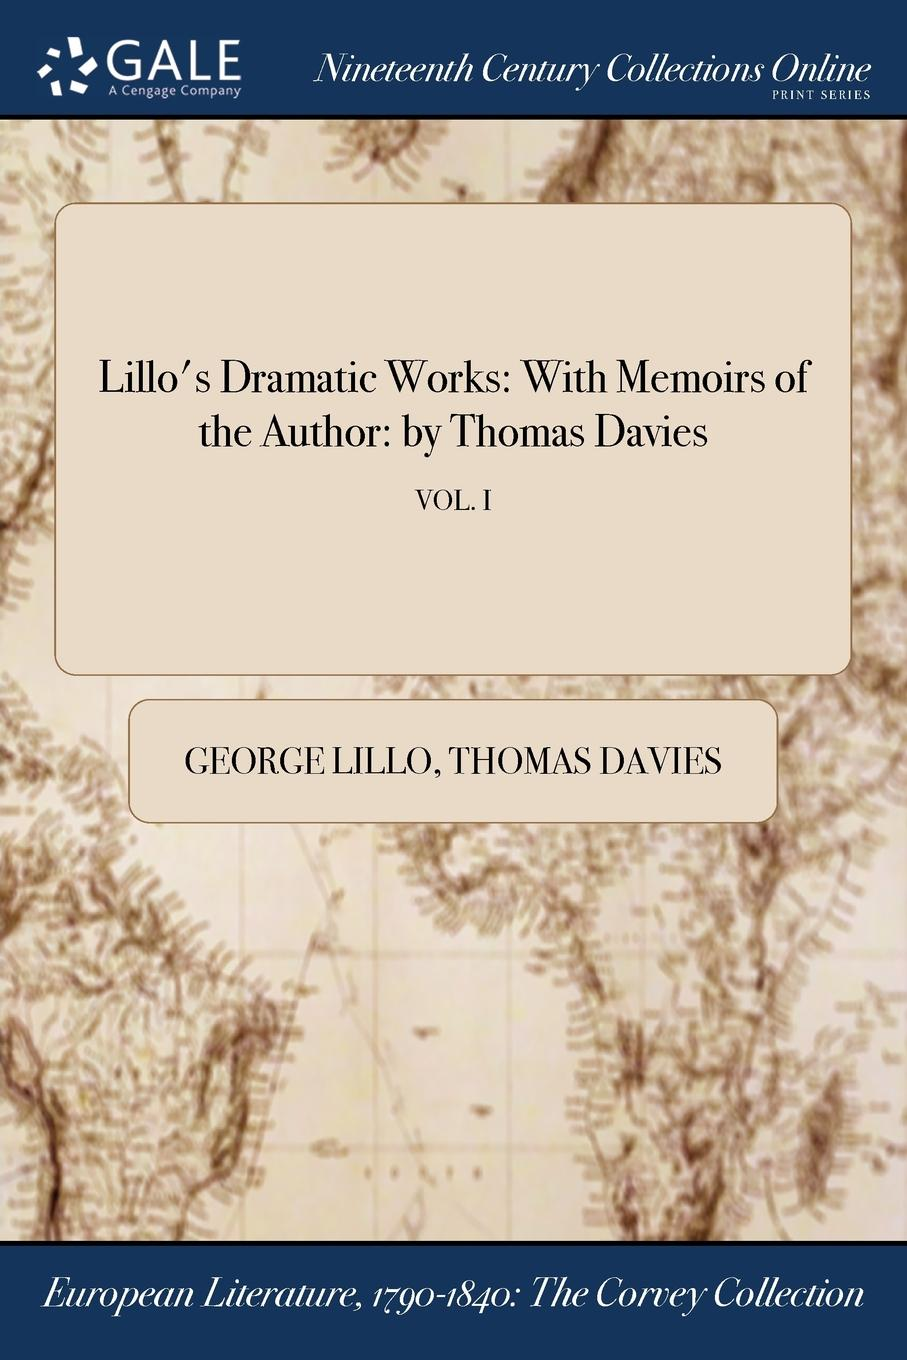 George Lillo, Thomas Davies Lillo.s Dramatic Works. With Memoirs of the Author: by Thomas Davies; VOL. I davies d s short stories from xixth century